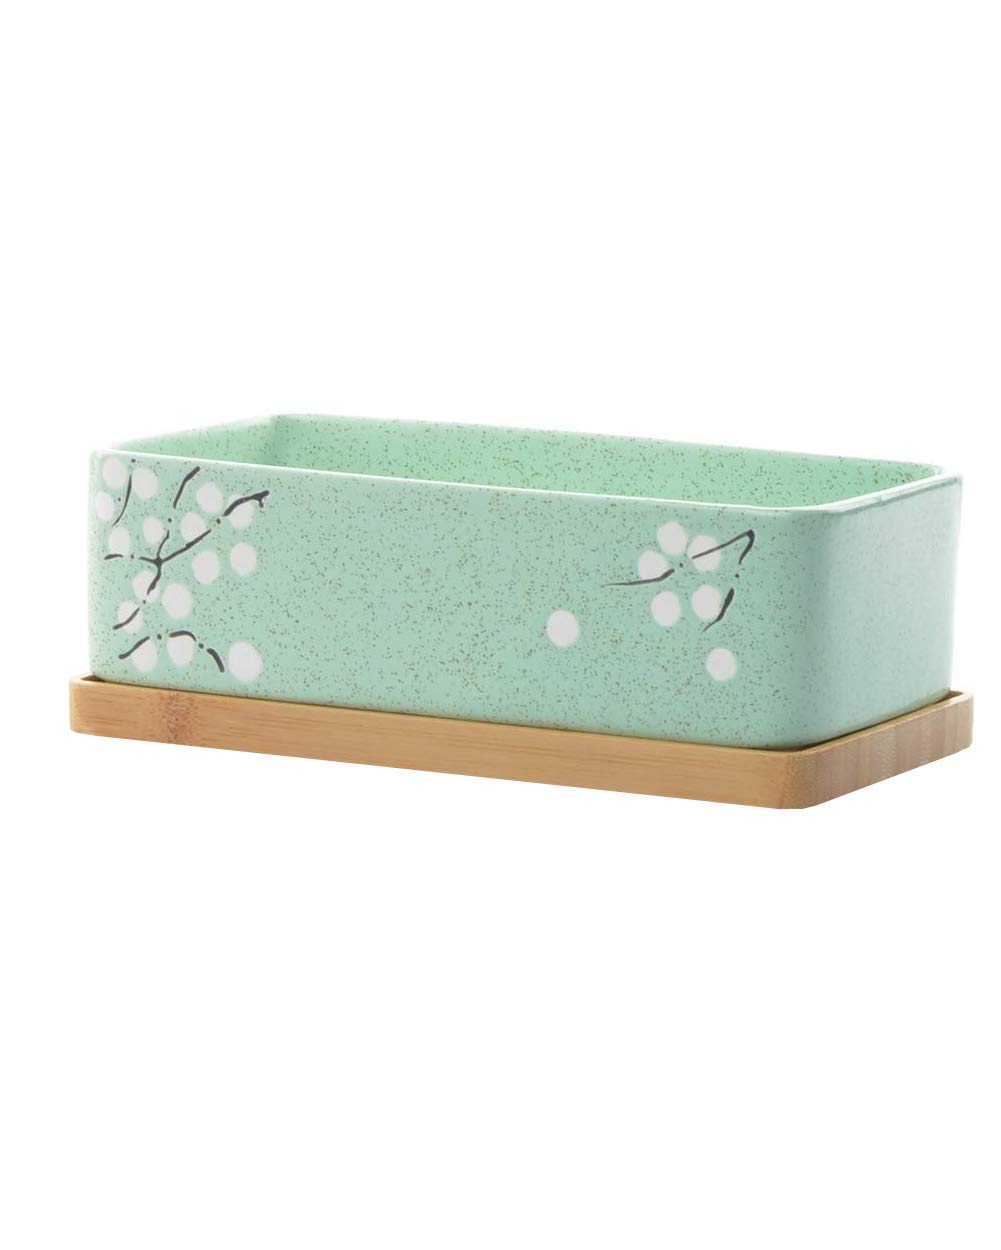 GardenBasix Ceramic Window Sill Planter Box Rectangle Flower Pot for Indoor Succulents Tabletop Decoration 1, Green with Tray